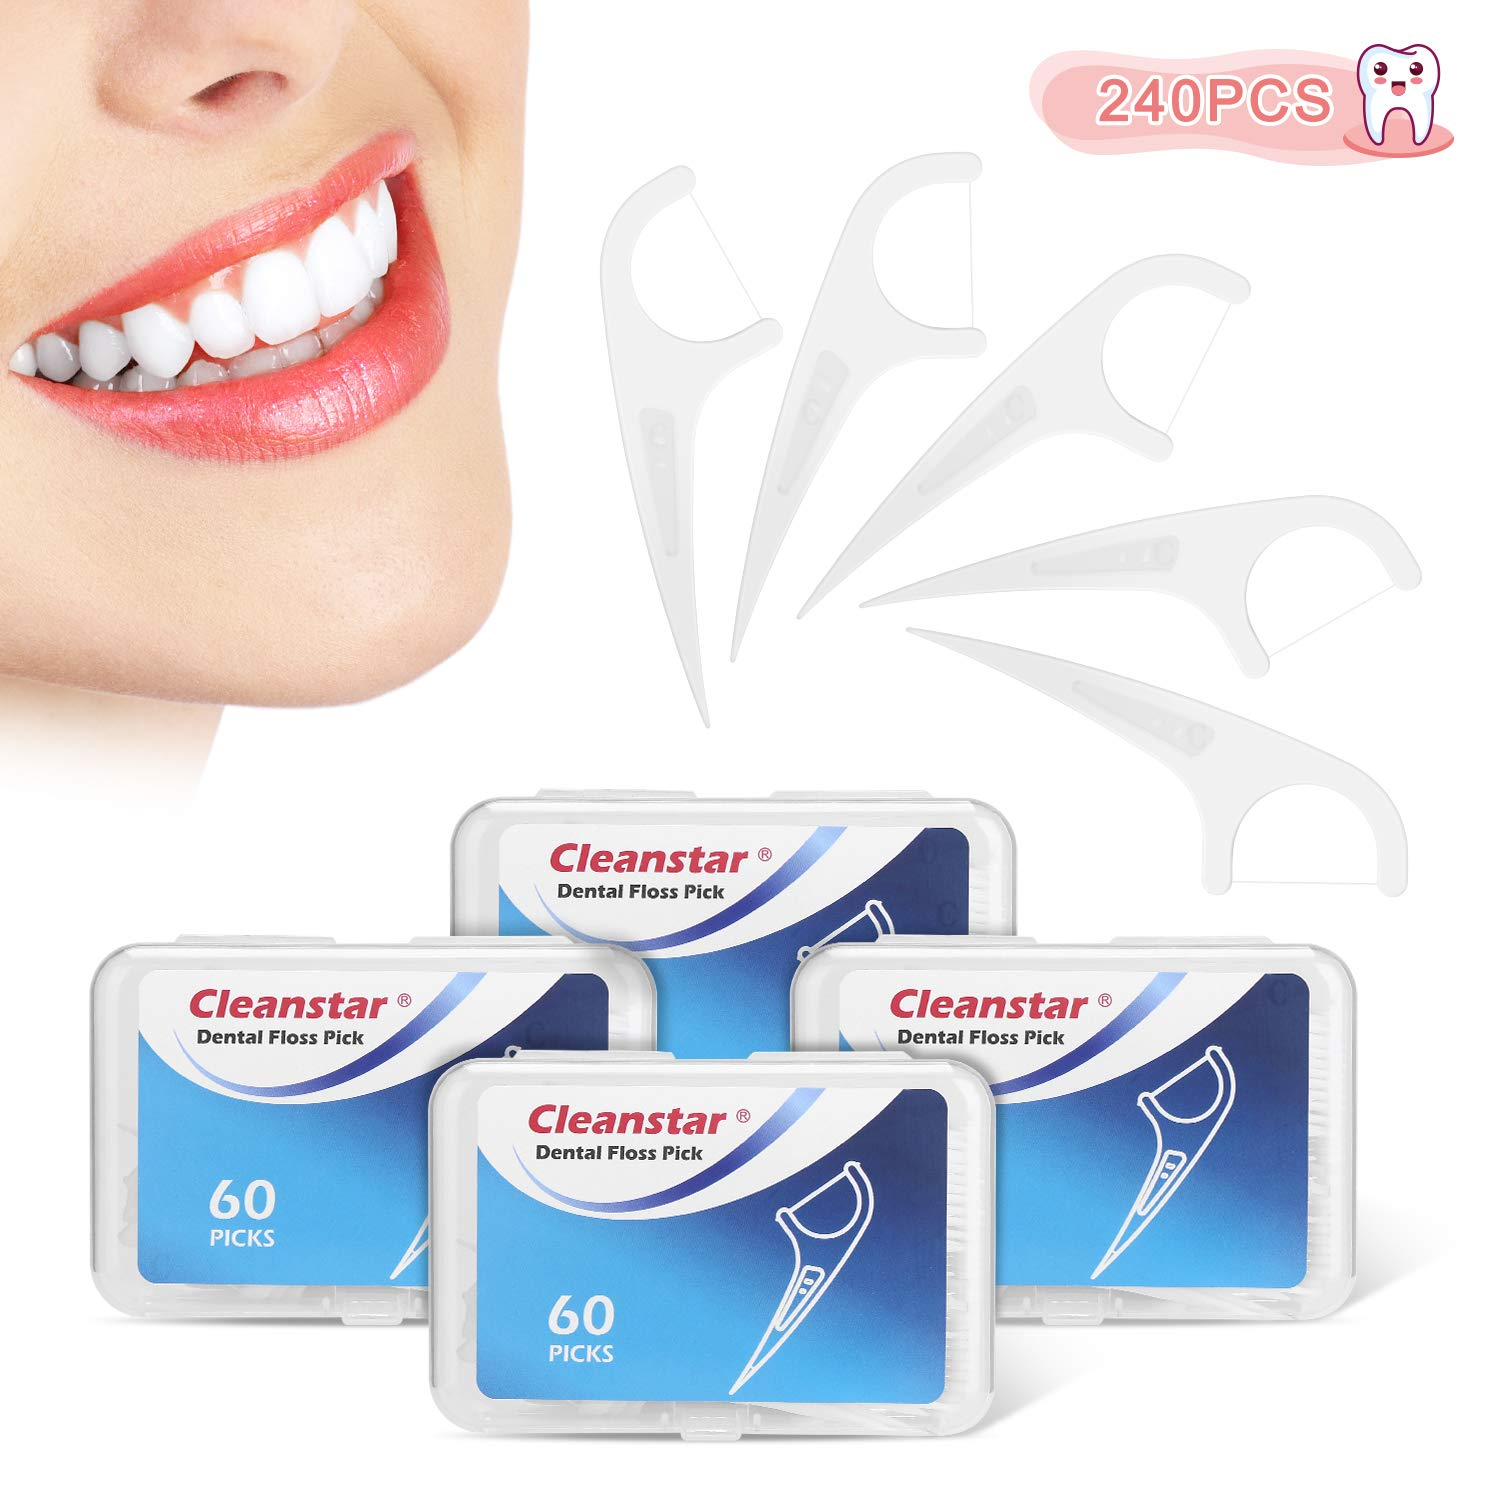 Cleanstar Floss Picks Unflavored Dental Floss Picks with 4 Travel Handy Cases | 240 Counts Pro-Health FlossPicks | Toothpick for Kid & Household &Travel 60 Pcs/4 Boxes by YISSVIC (Image #1)